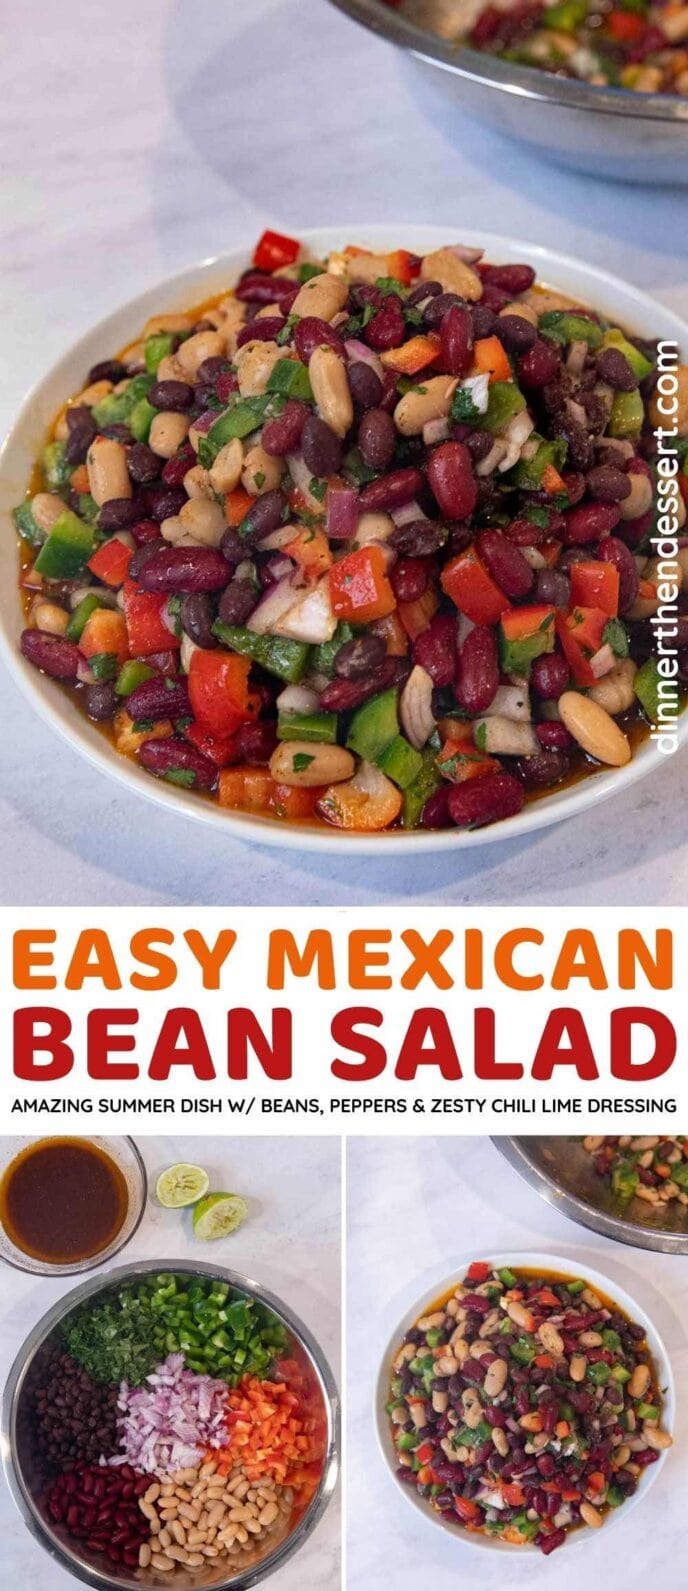 Mexican Bean Salad collage